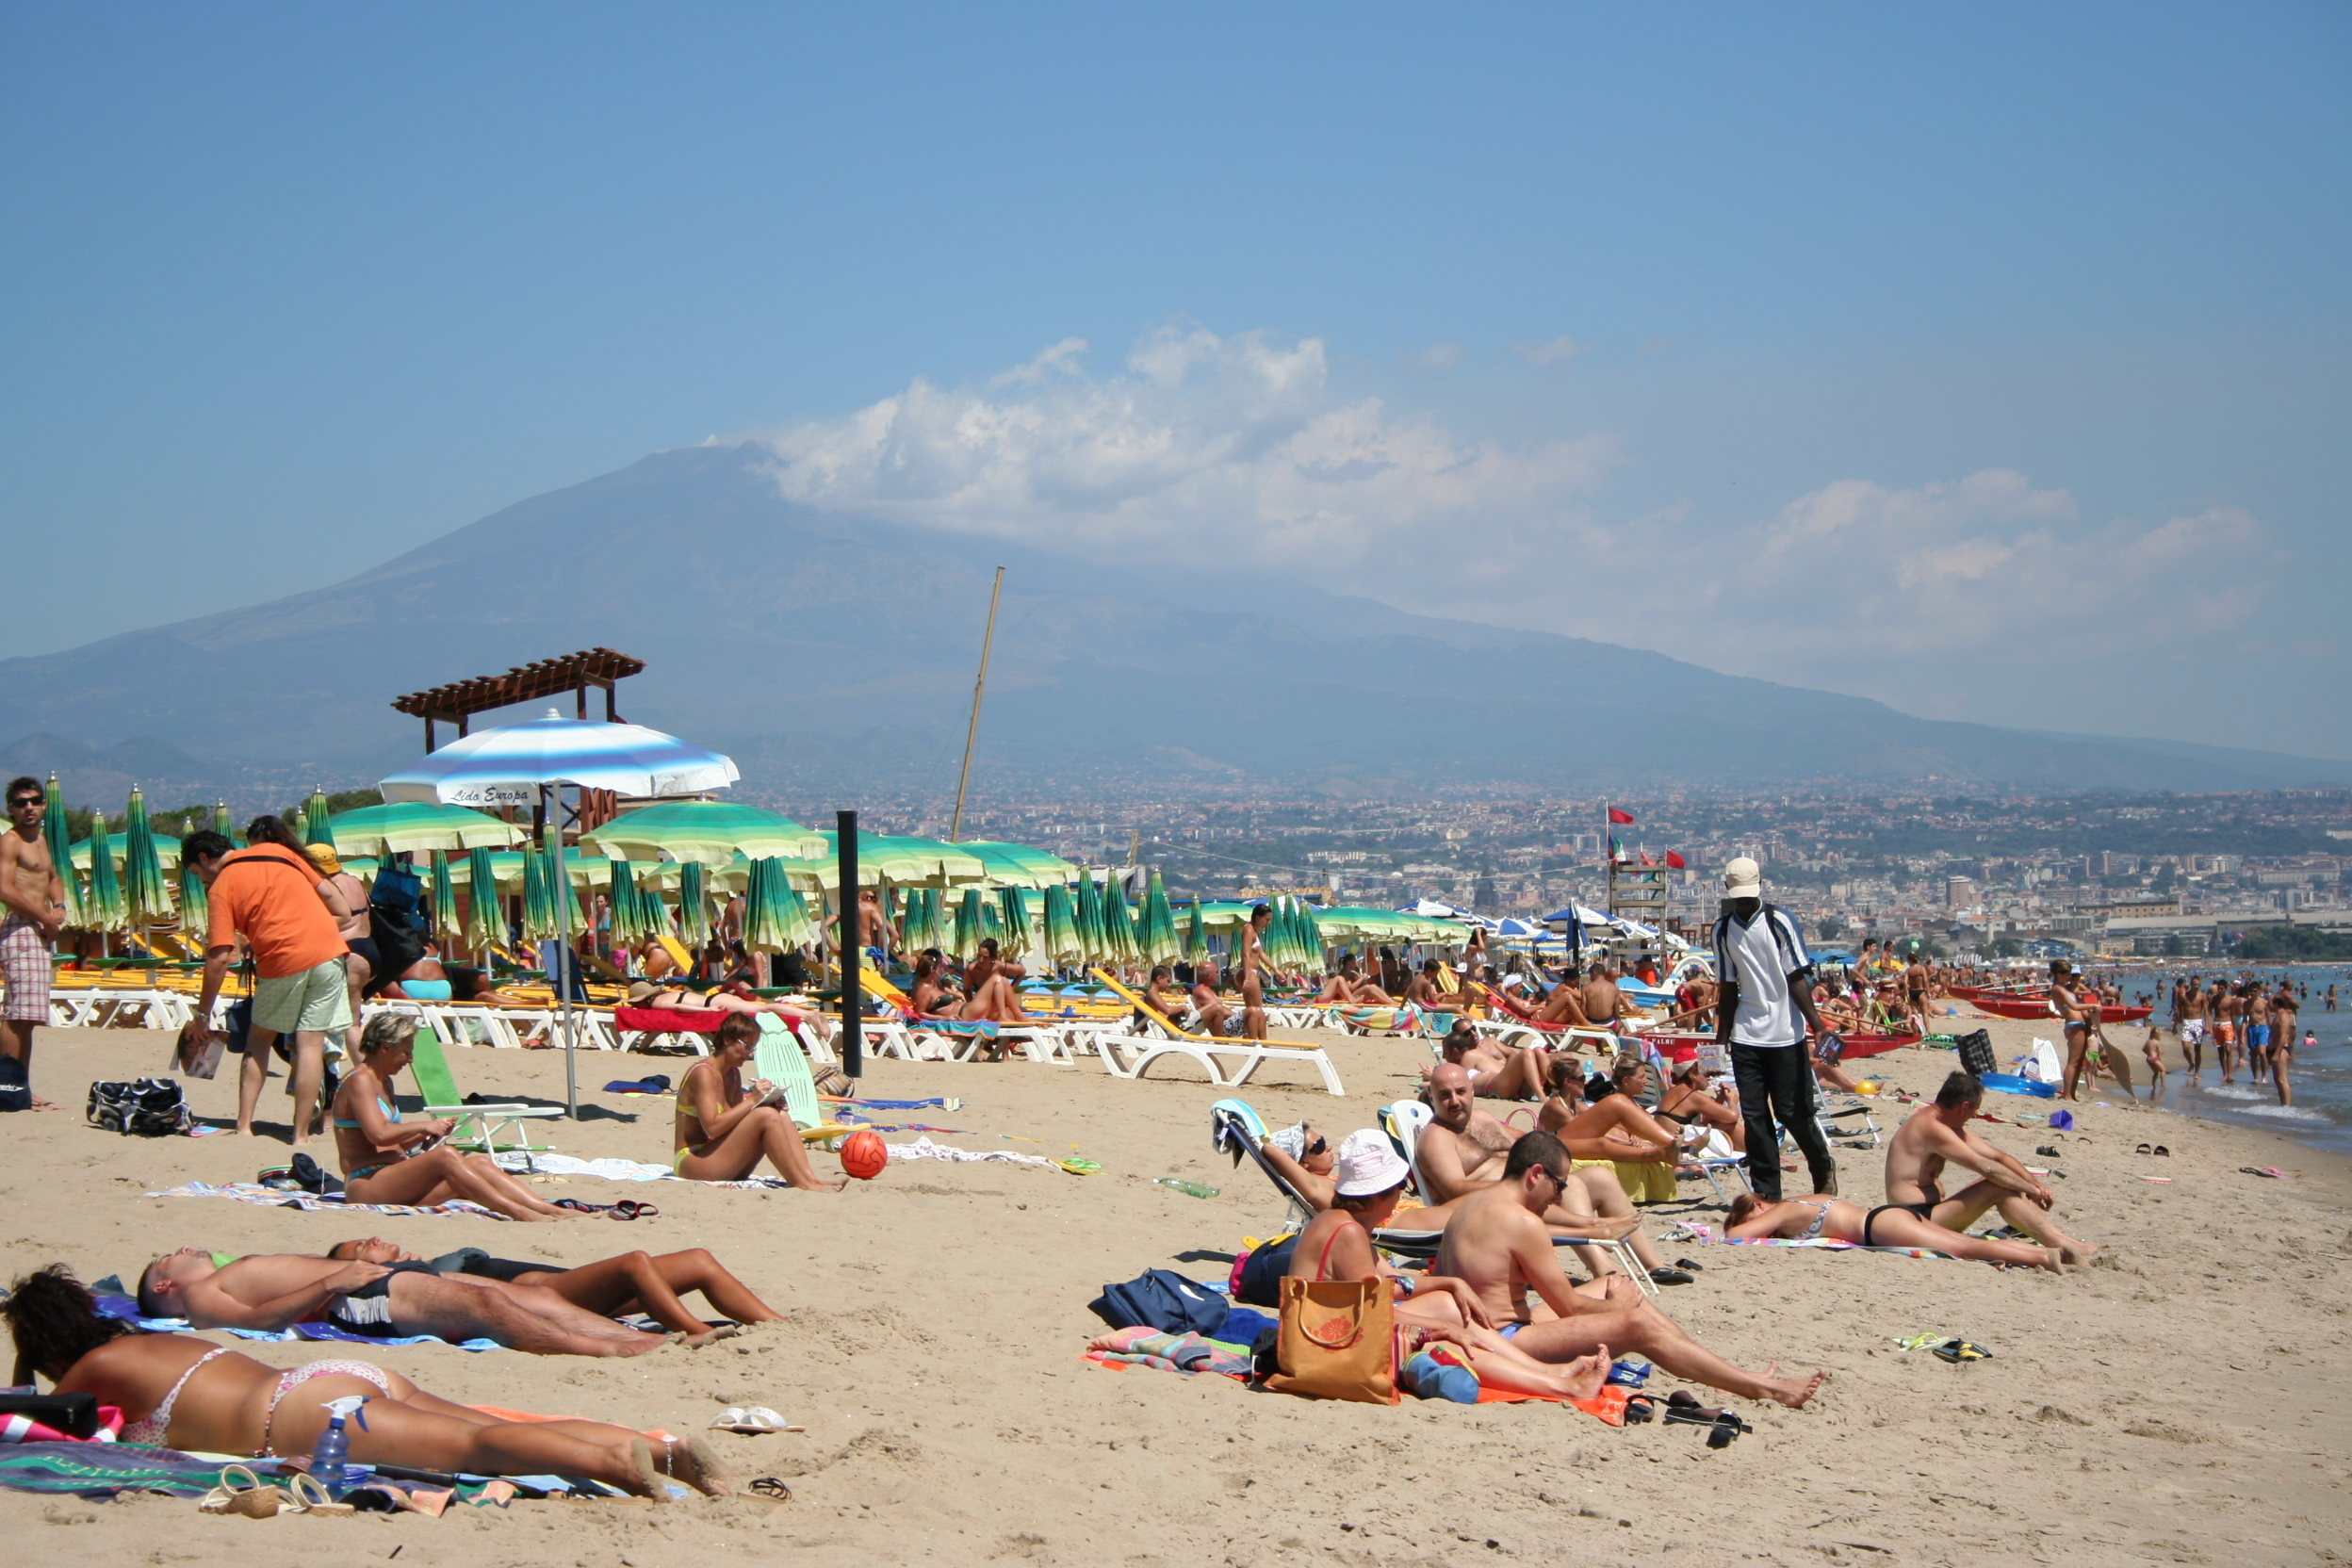 Beach vacation in Sicily